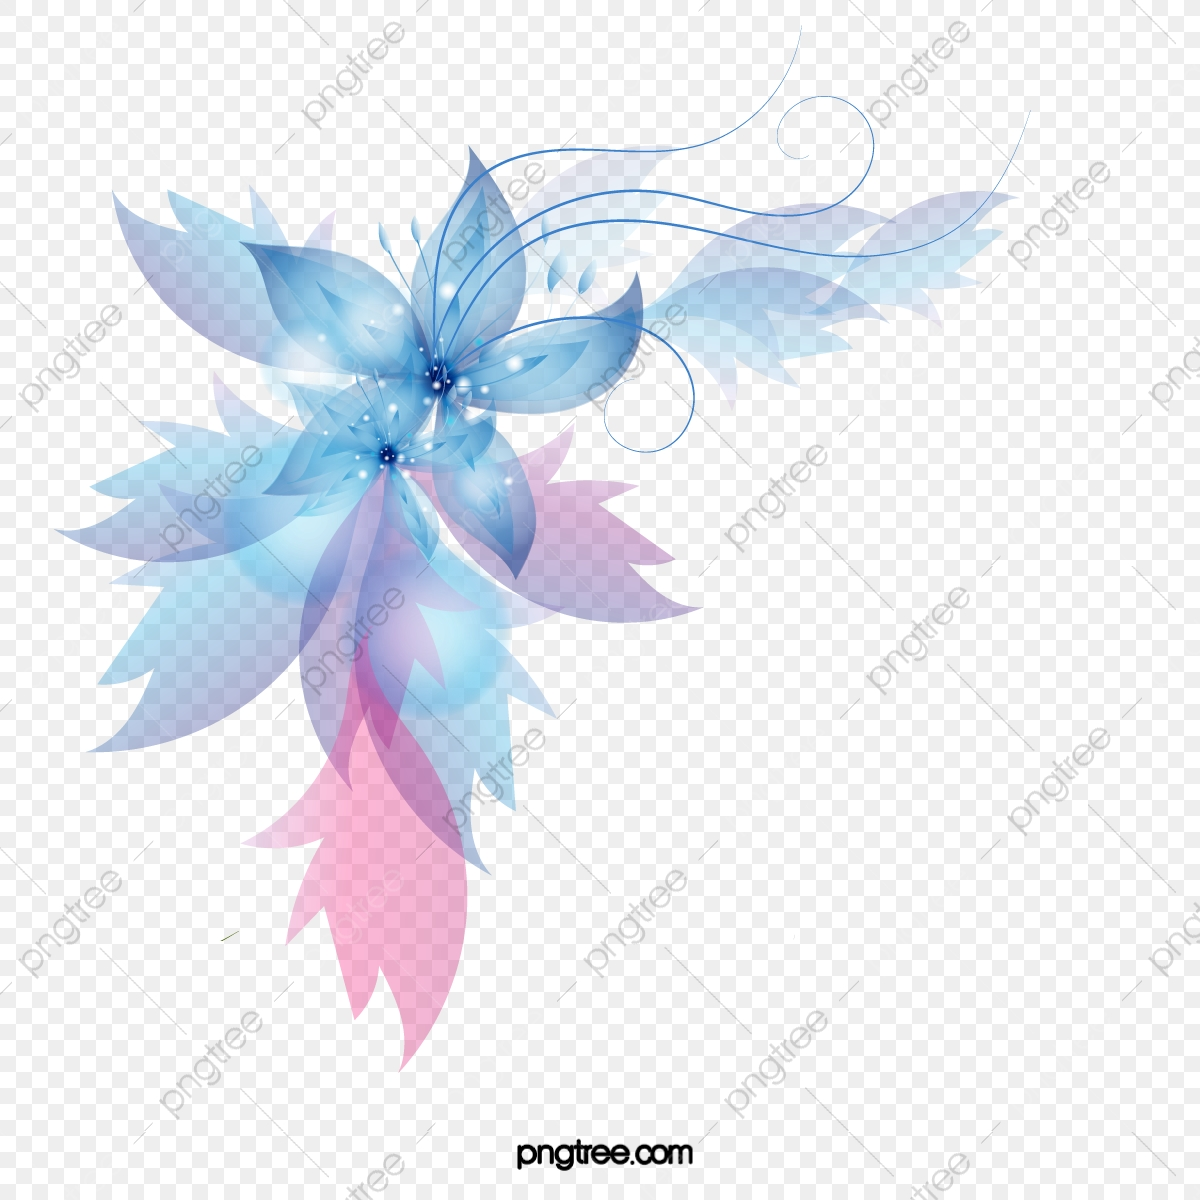 Blue Abstract Flowers Png - Colorful Abstract Flowers, Abstract, Bright, Flowers PNG ...